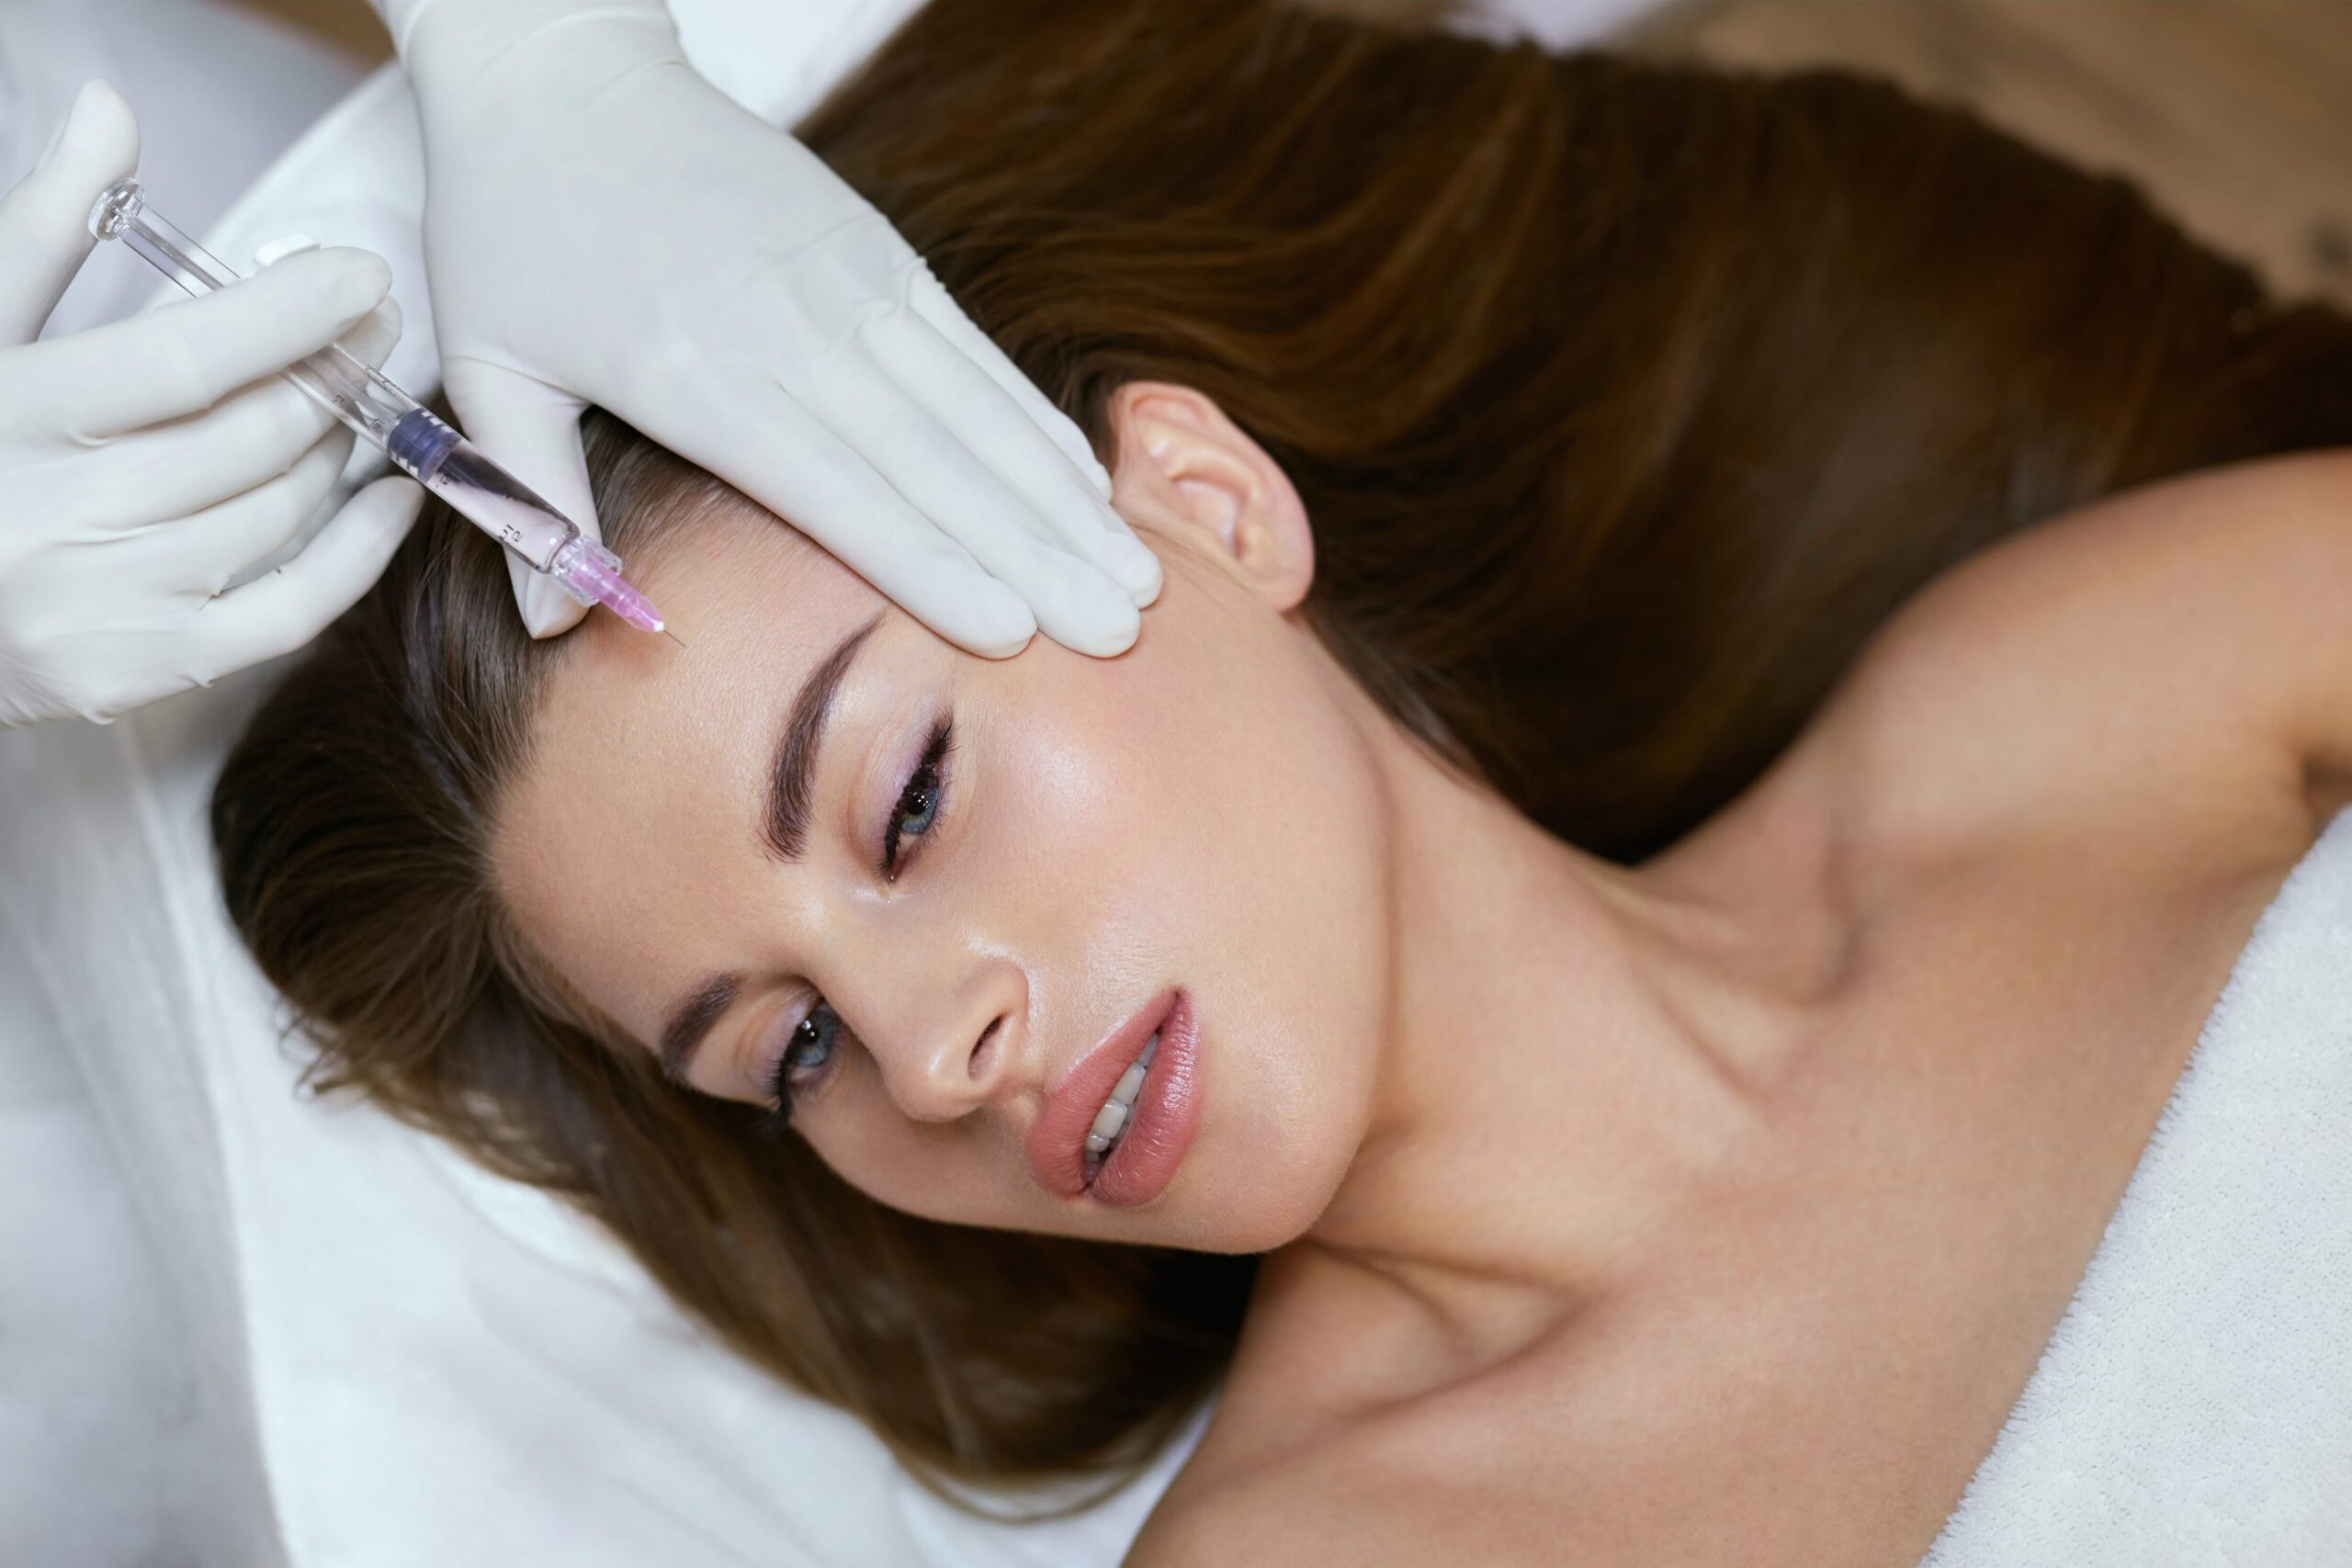 Worried About Going Under the Needle? Consider Non-Surgical Procedures for Younger Looking Skin